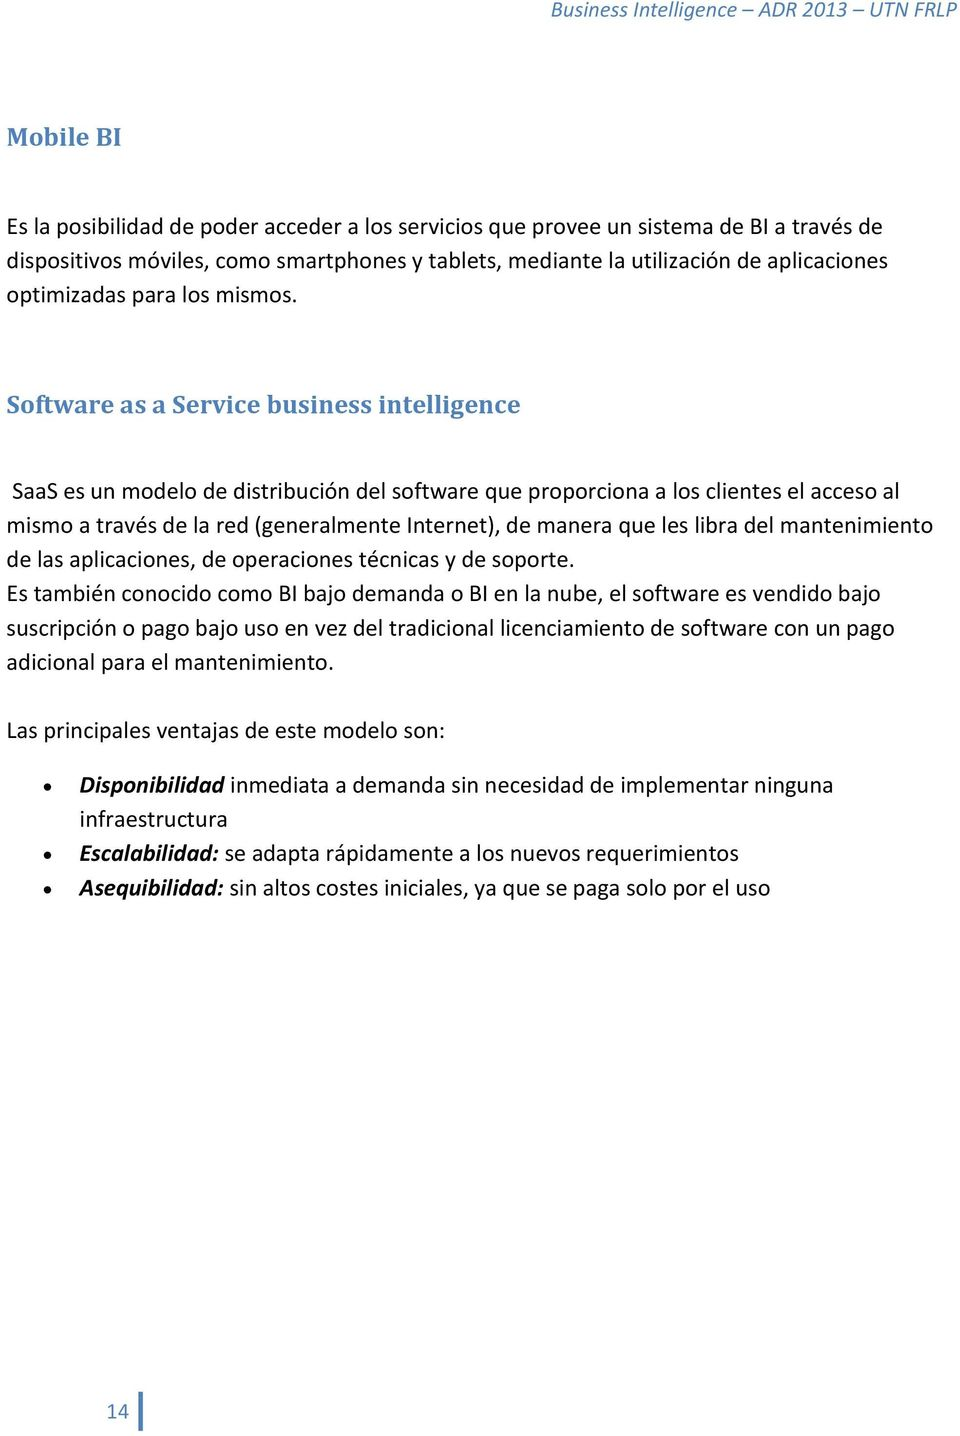 Software as a Service business intelligence SaaS es un modelo de distribución del software que proporciona a los clientes el acceso al mismo a través de la red (generalmente Internet), de manera que